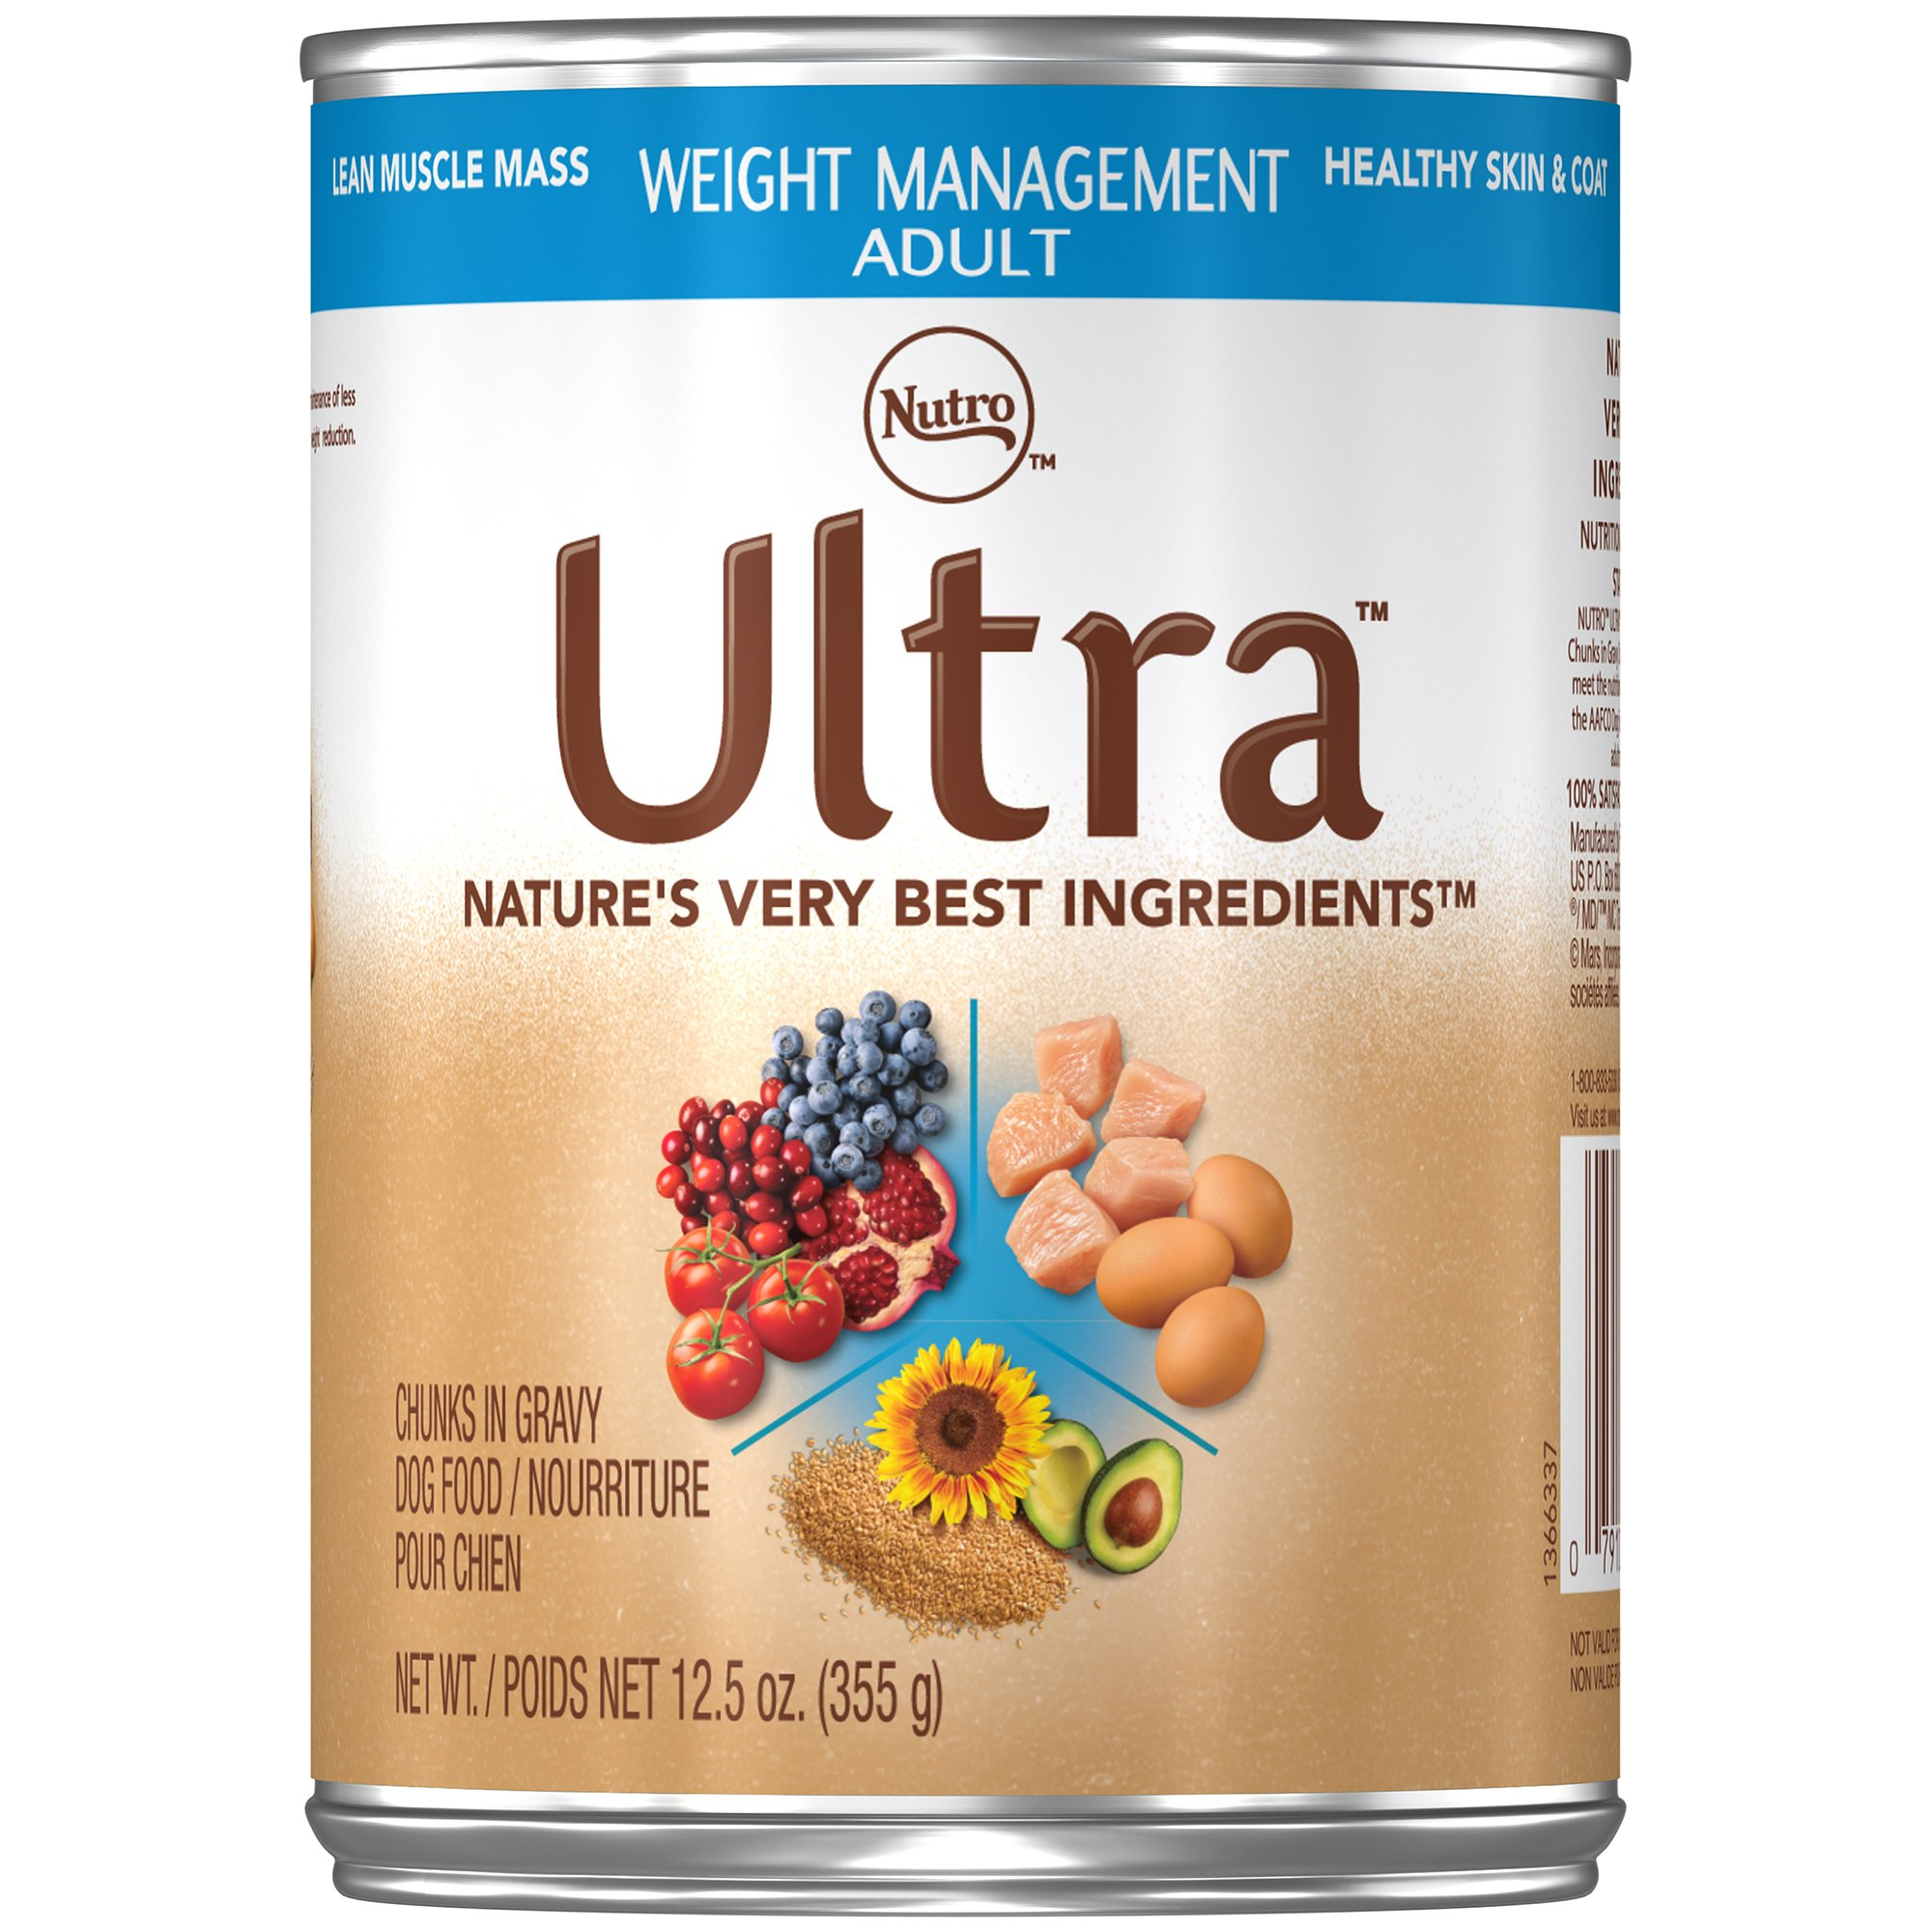 Nutro ULTRA Adult Weight Management Chunks in Gravy Canned Dog Food 12.5 oz. Cans (Pack of 12)